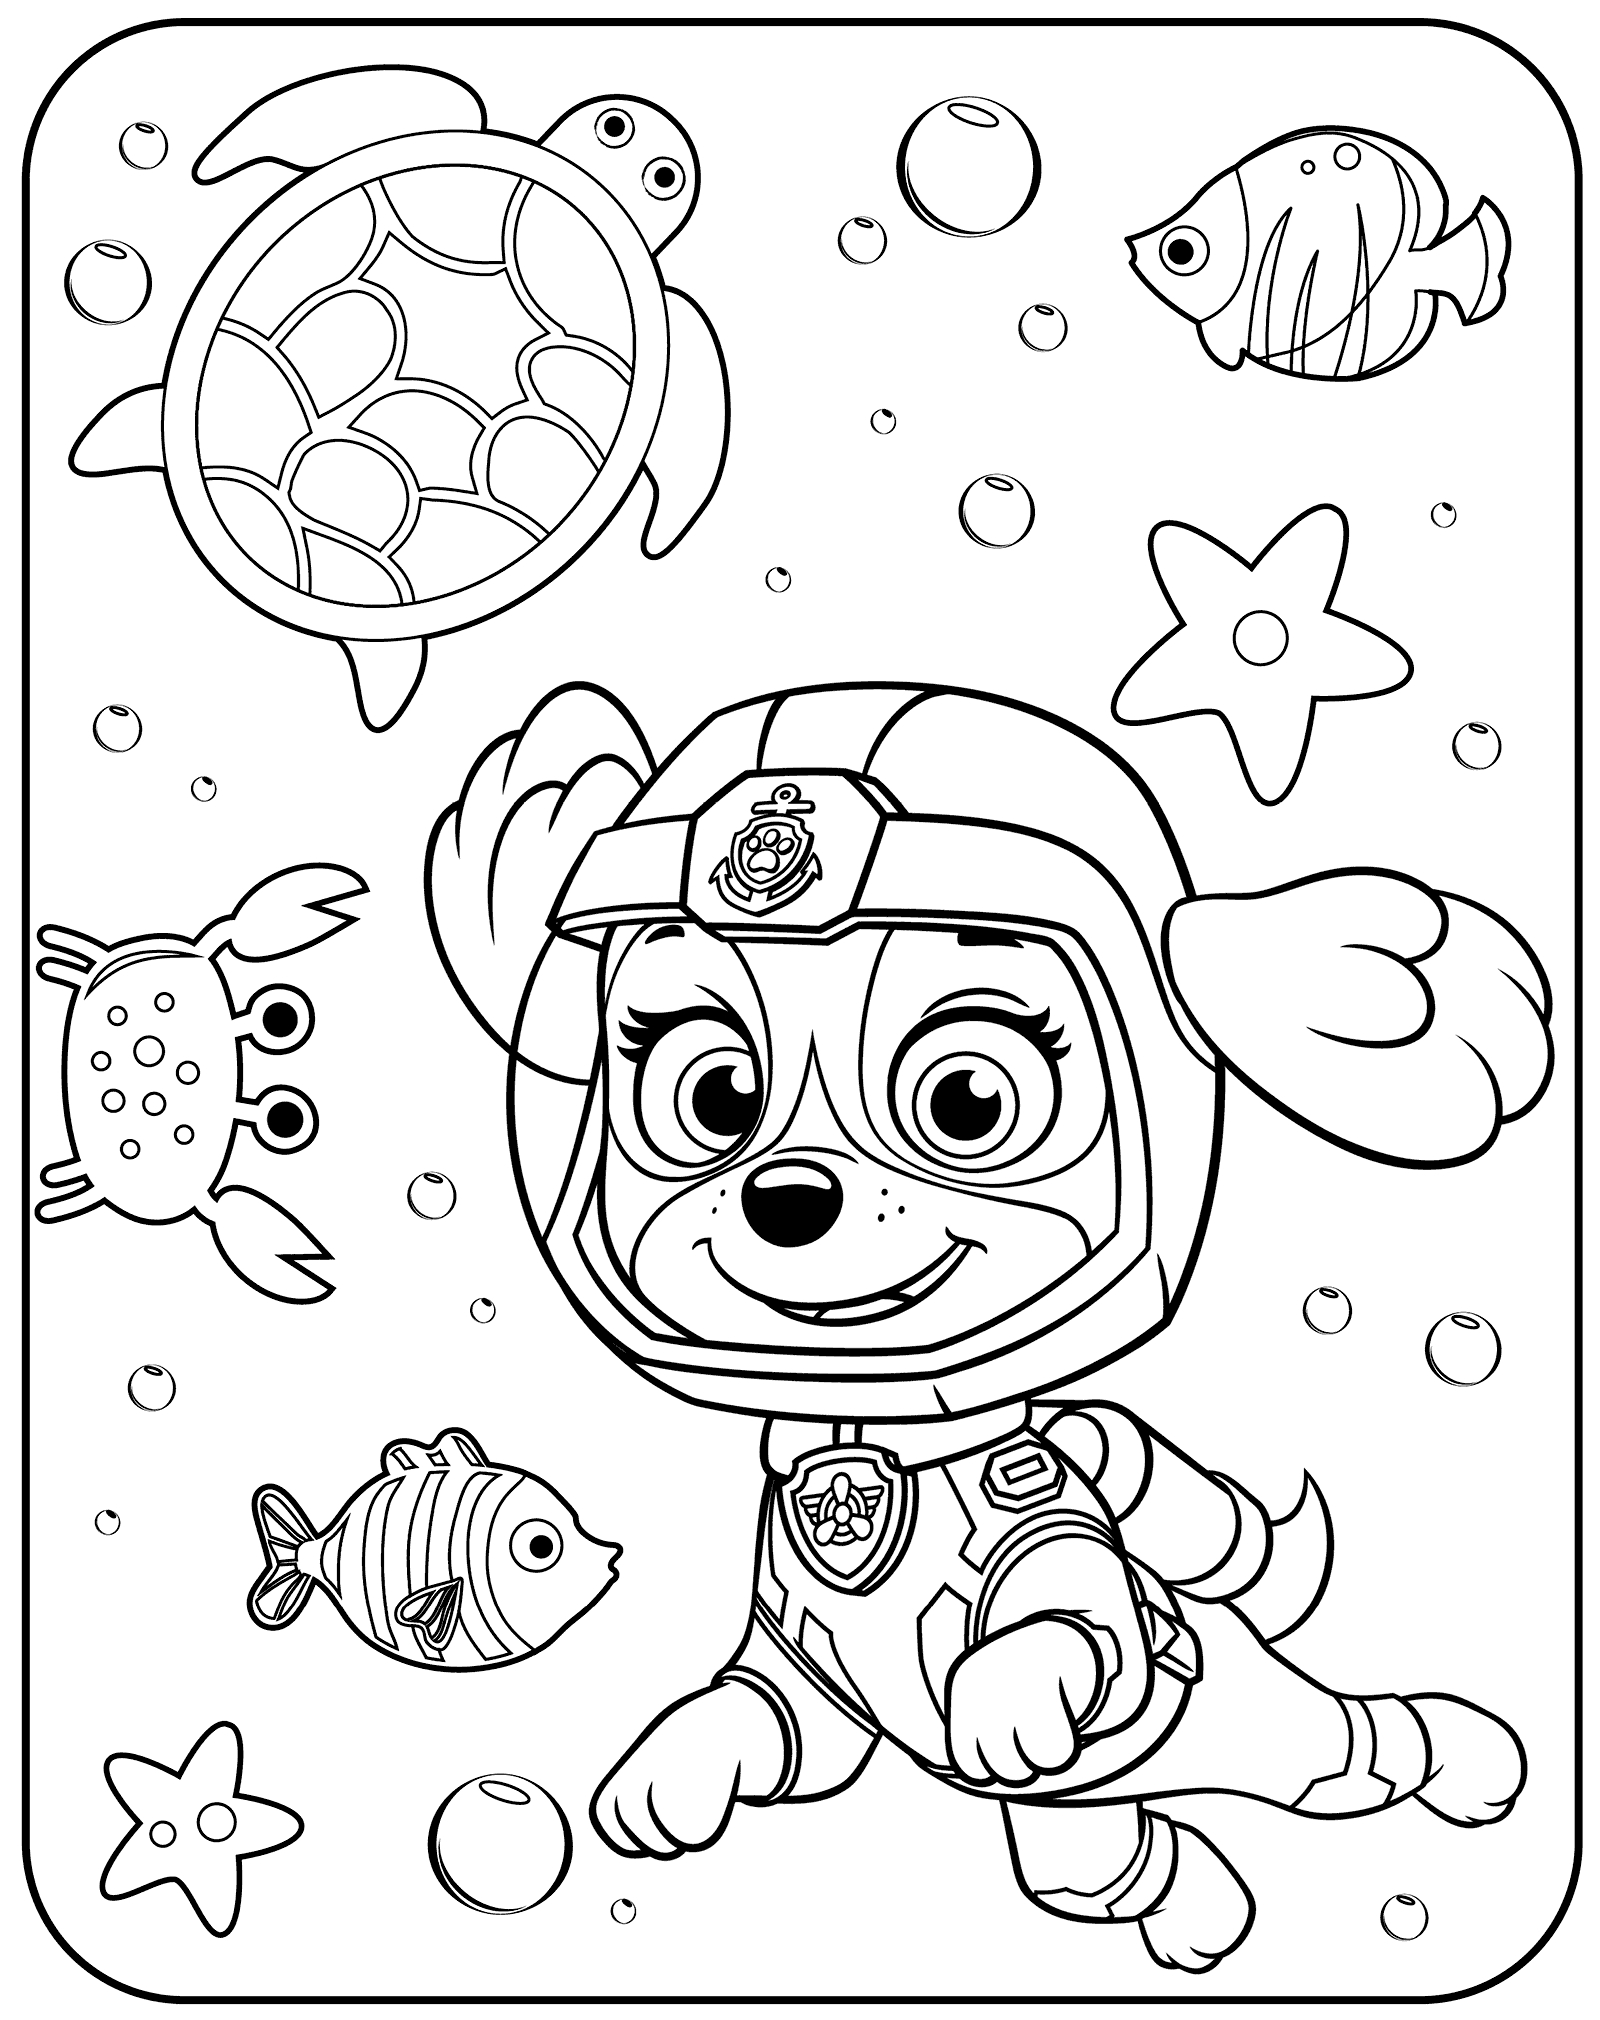 paw patrol characters paw patrol characters coloring pages at getdrawings free paw characters patrol